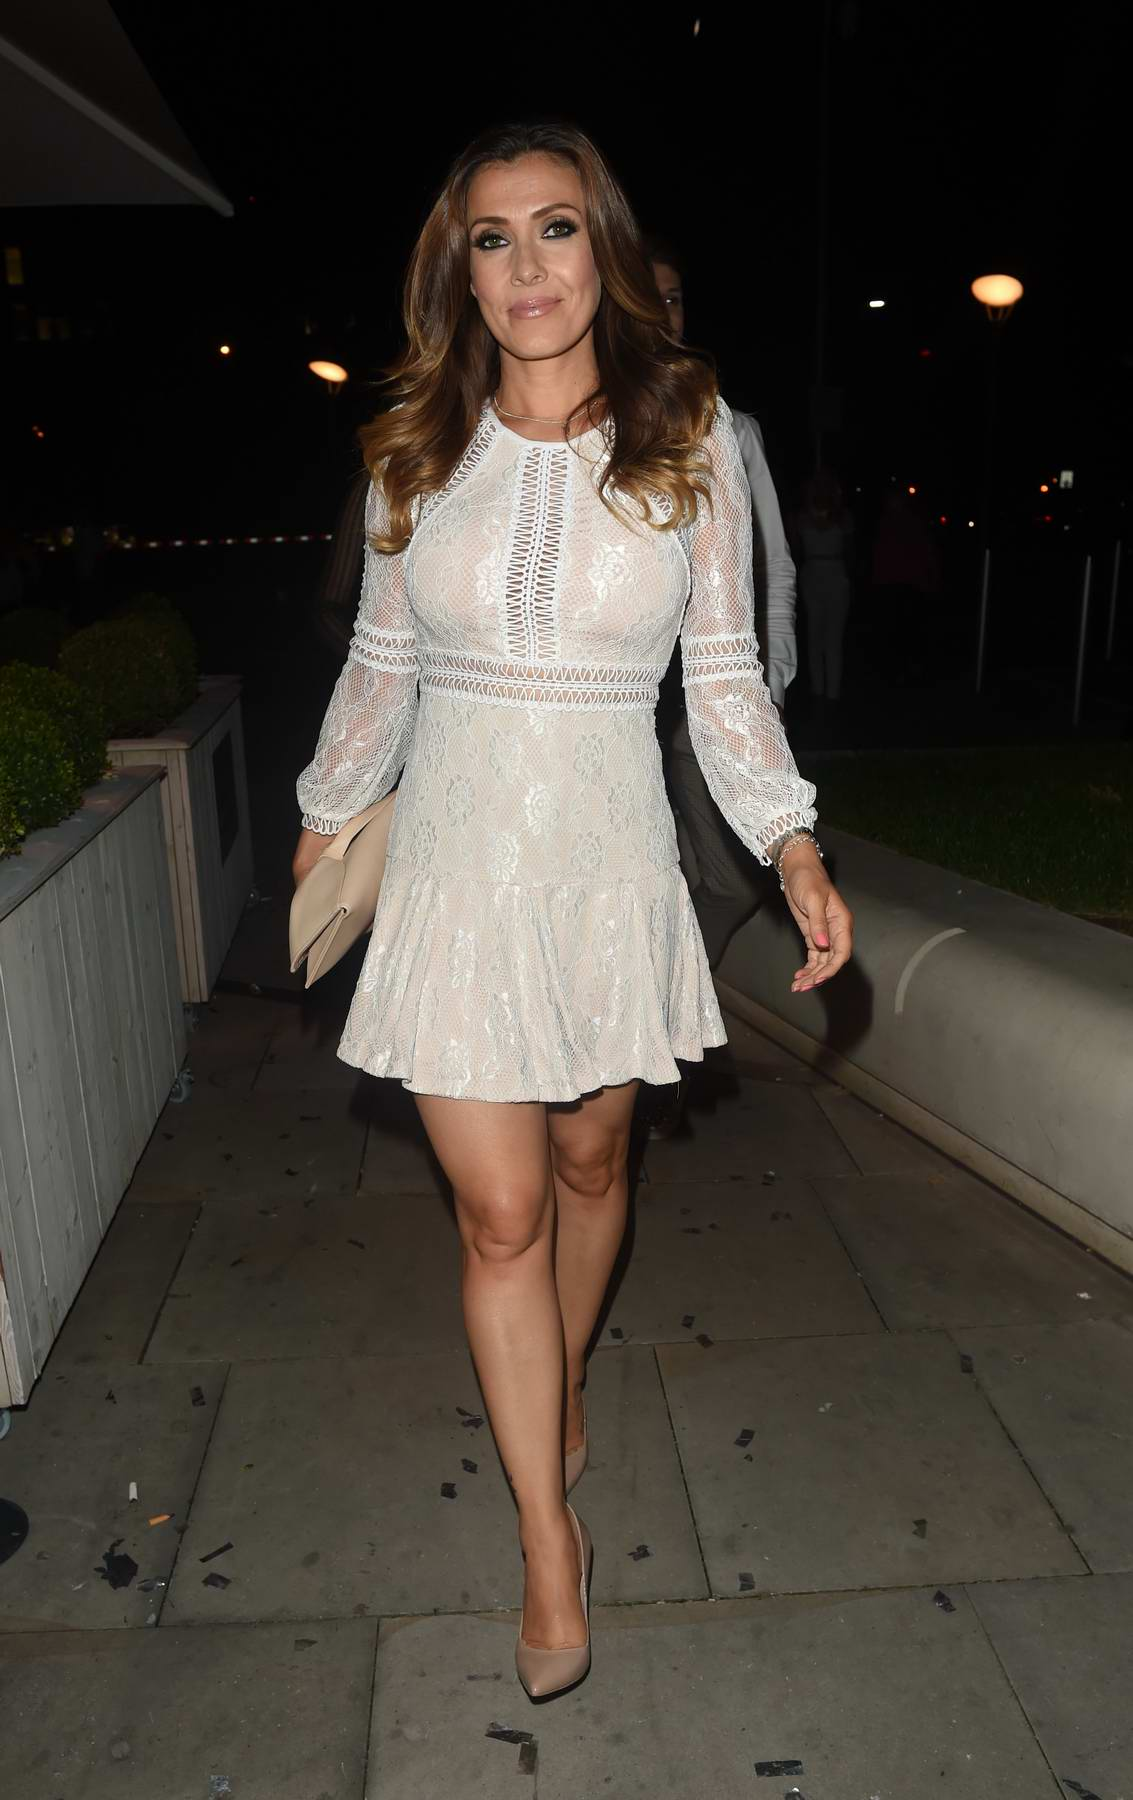 Kym Marsh spotted at Rosso Restaurant and Menagerie in Manchester, UK